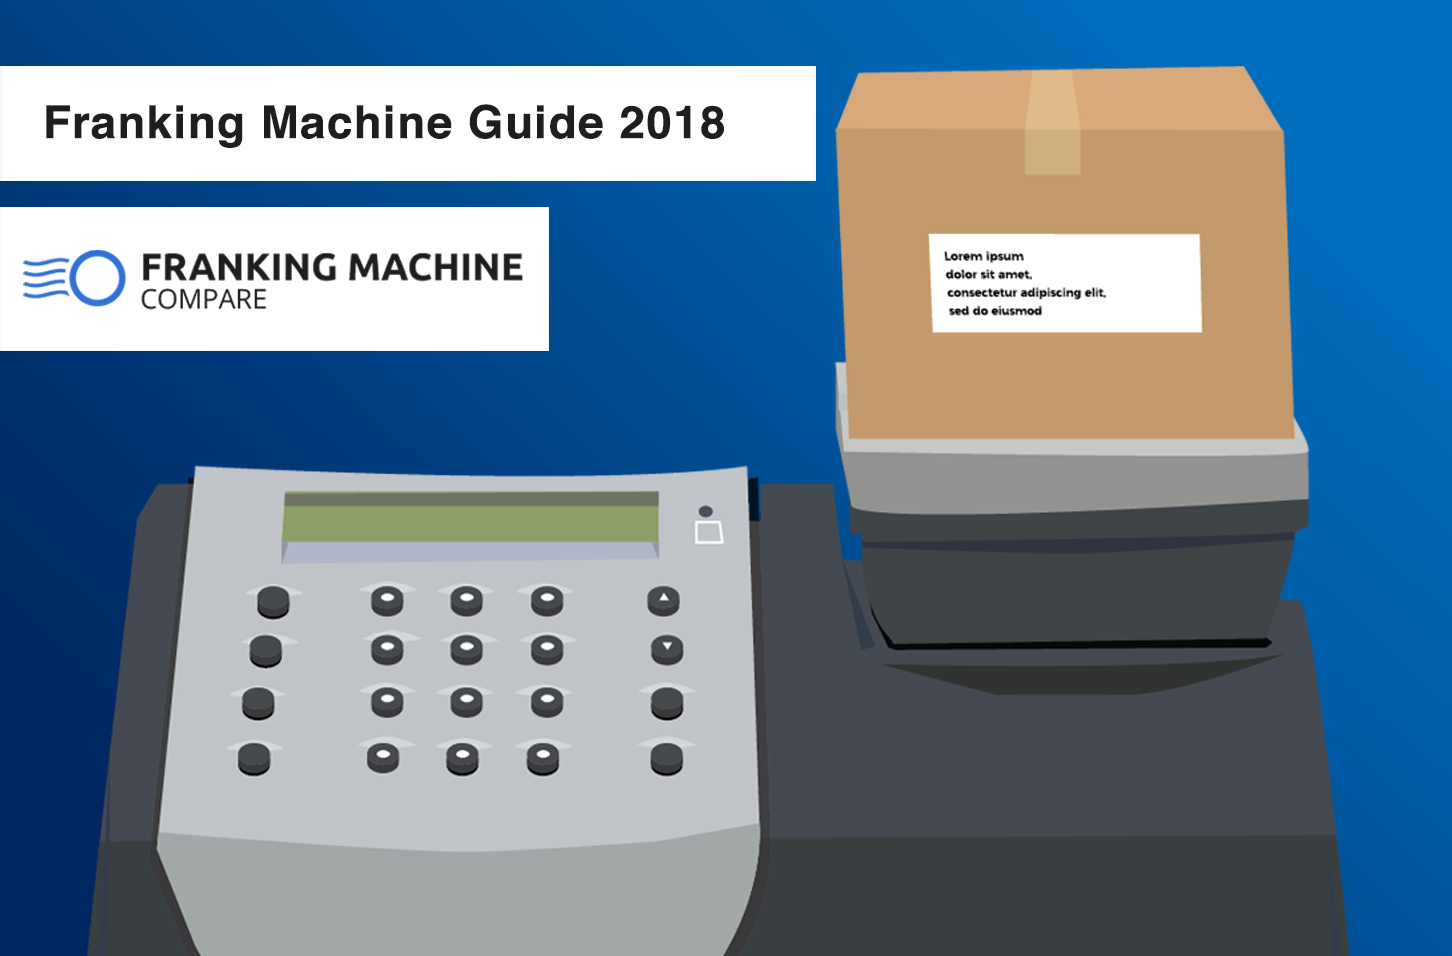 franking machine guide 2018